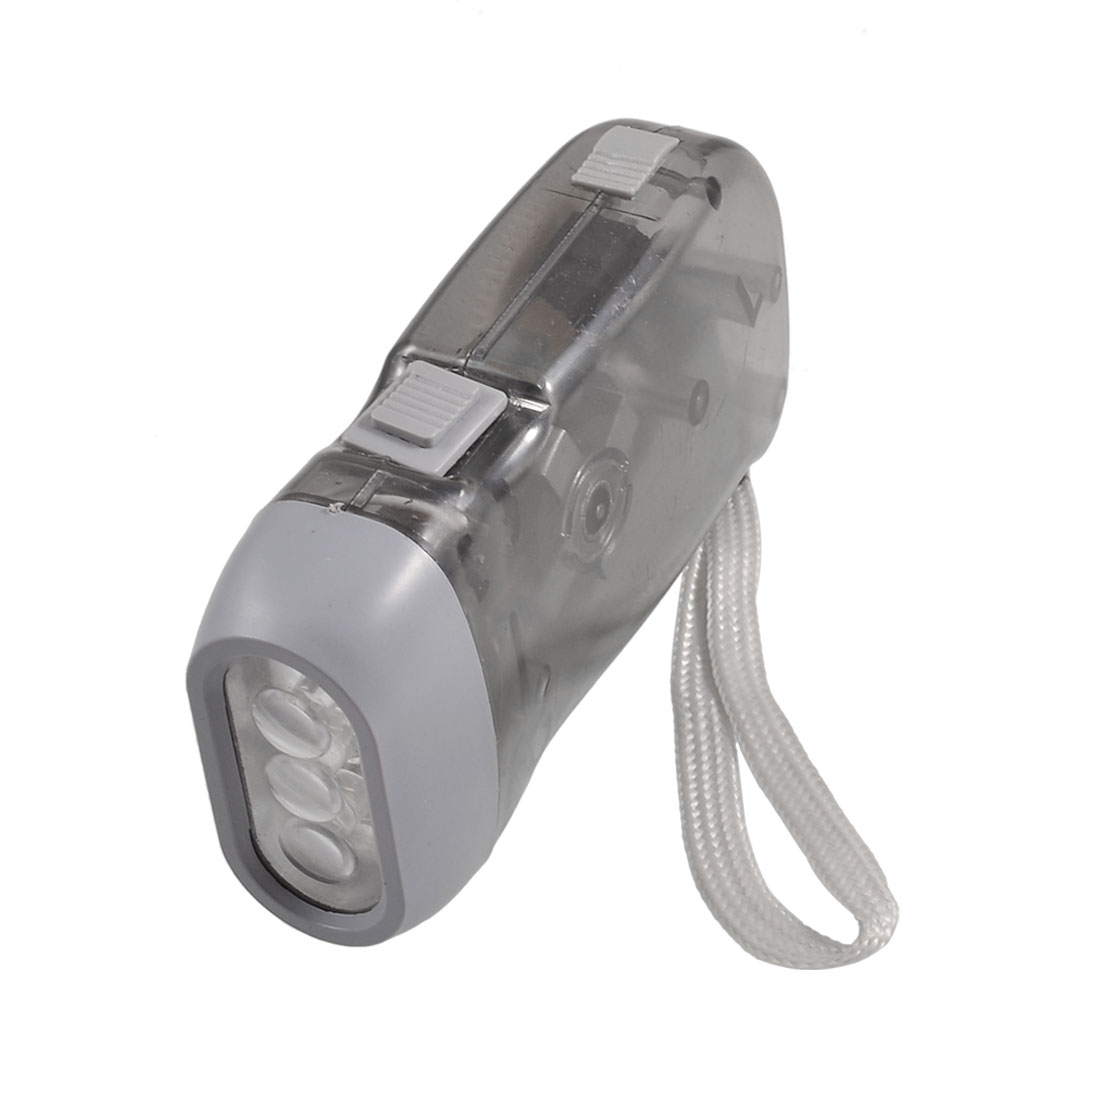 Clear Gray Shell White 3 LEDs Light Hand Pressing Flashlight Torch w Strap